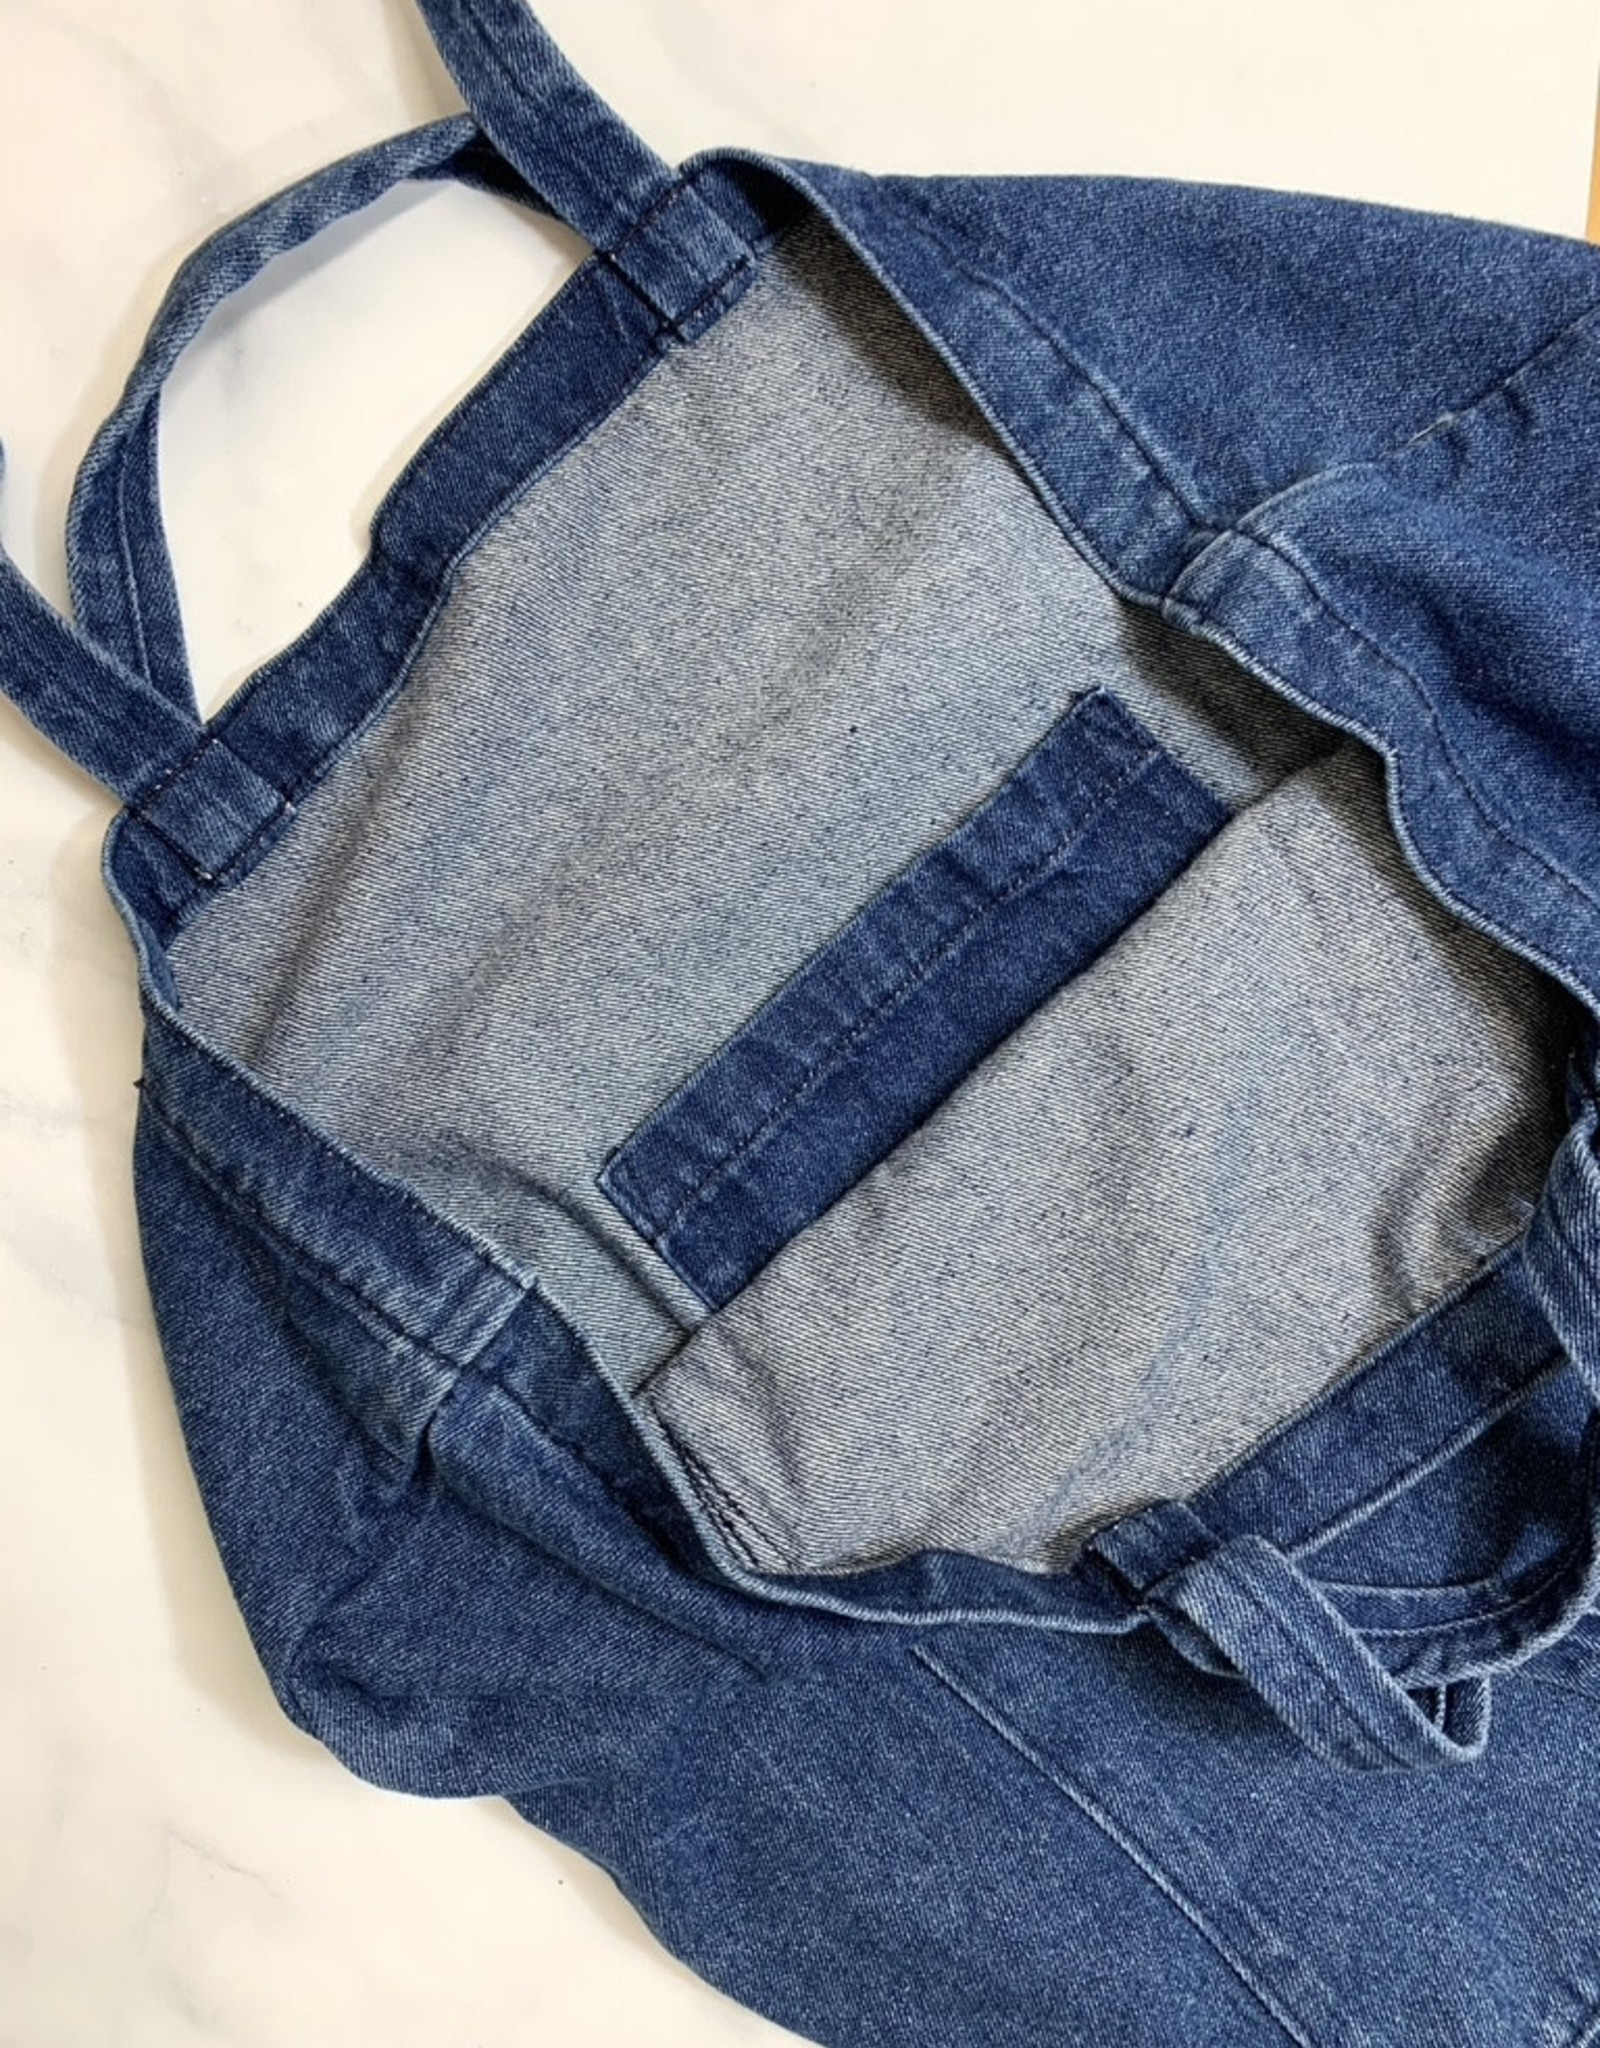 Dark Denim Giant Pocket Tote by Peg and Awl